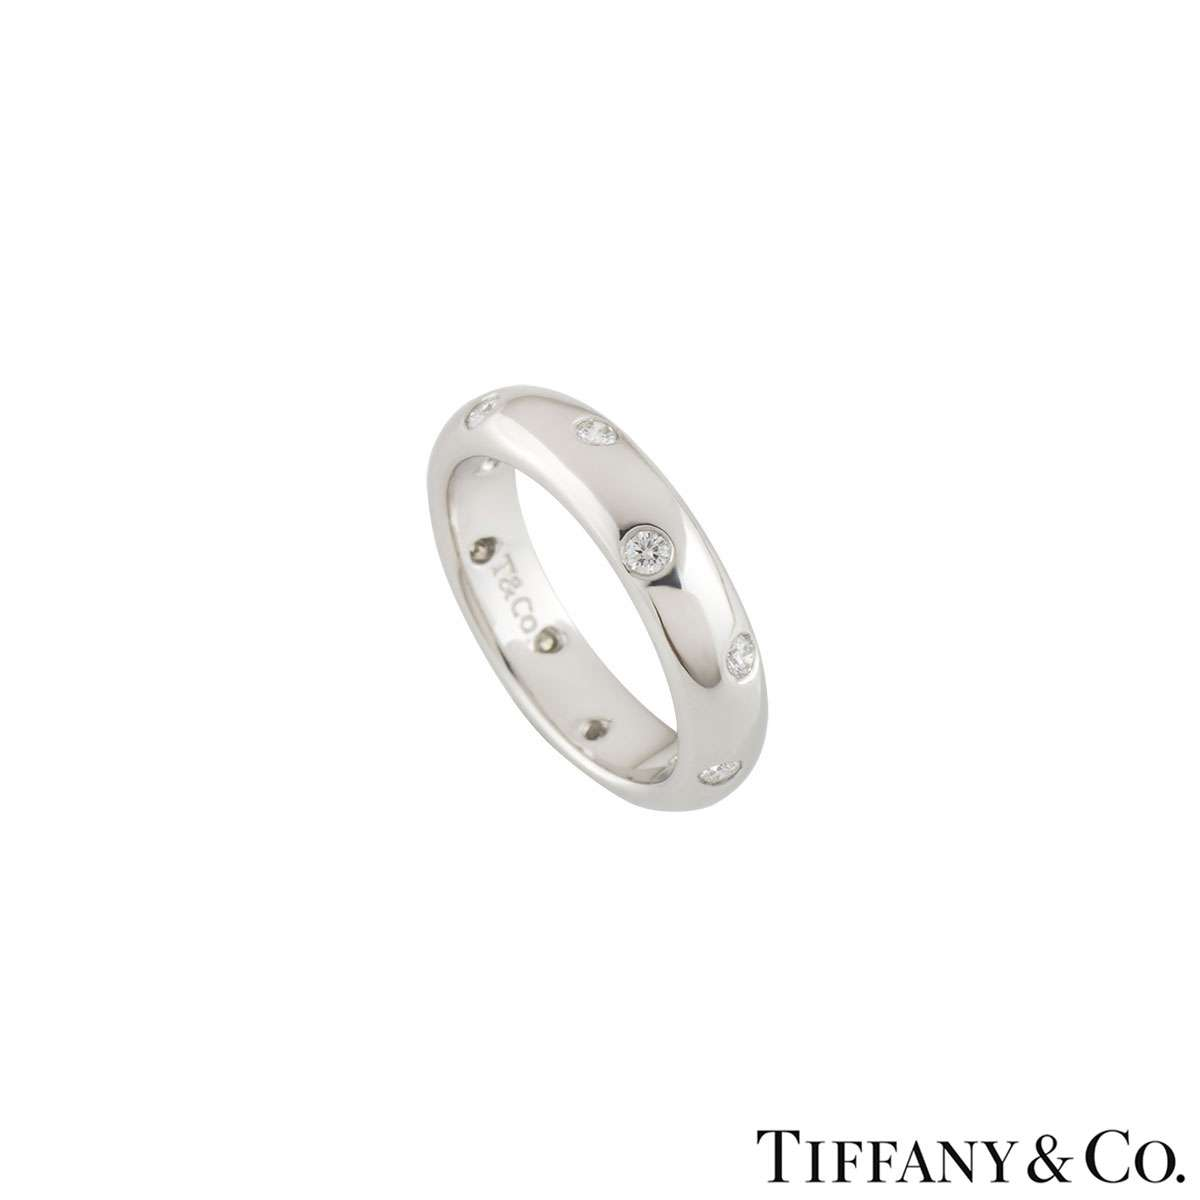 Tiffany & Co. Platinum Etoile Band Ring 0.22ct